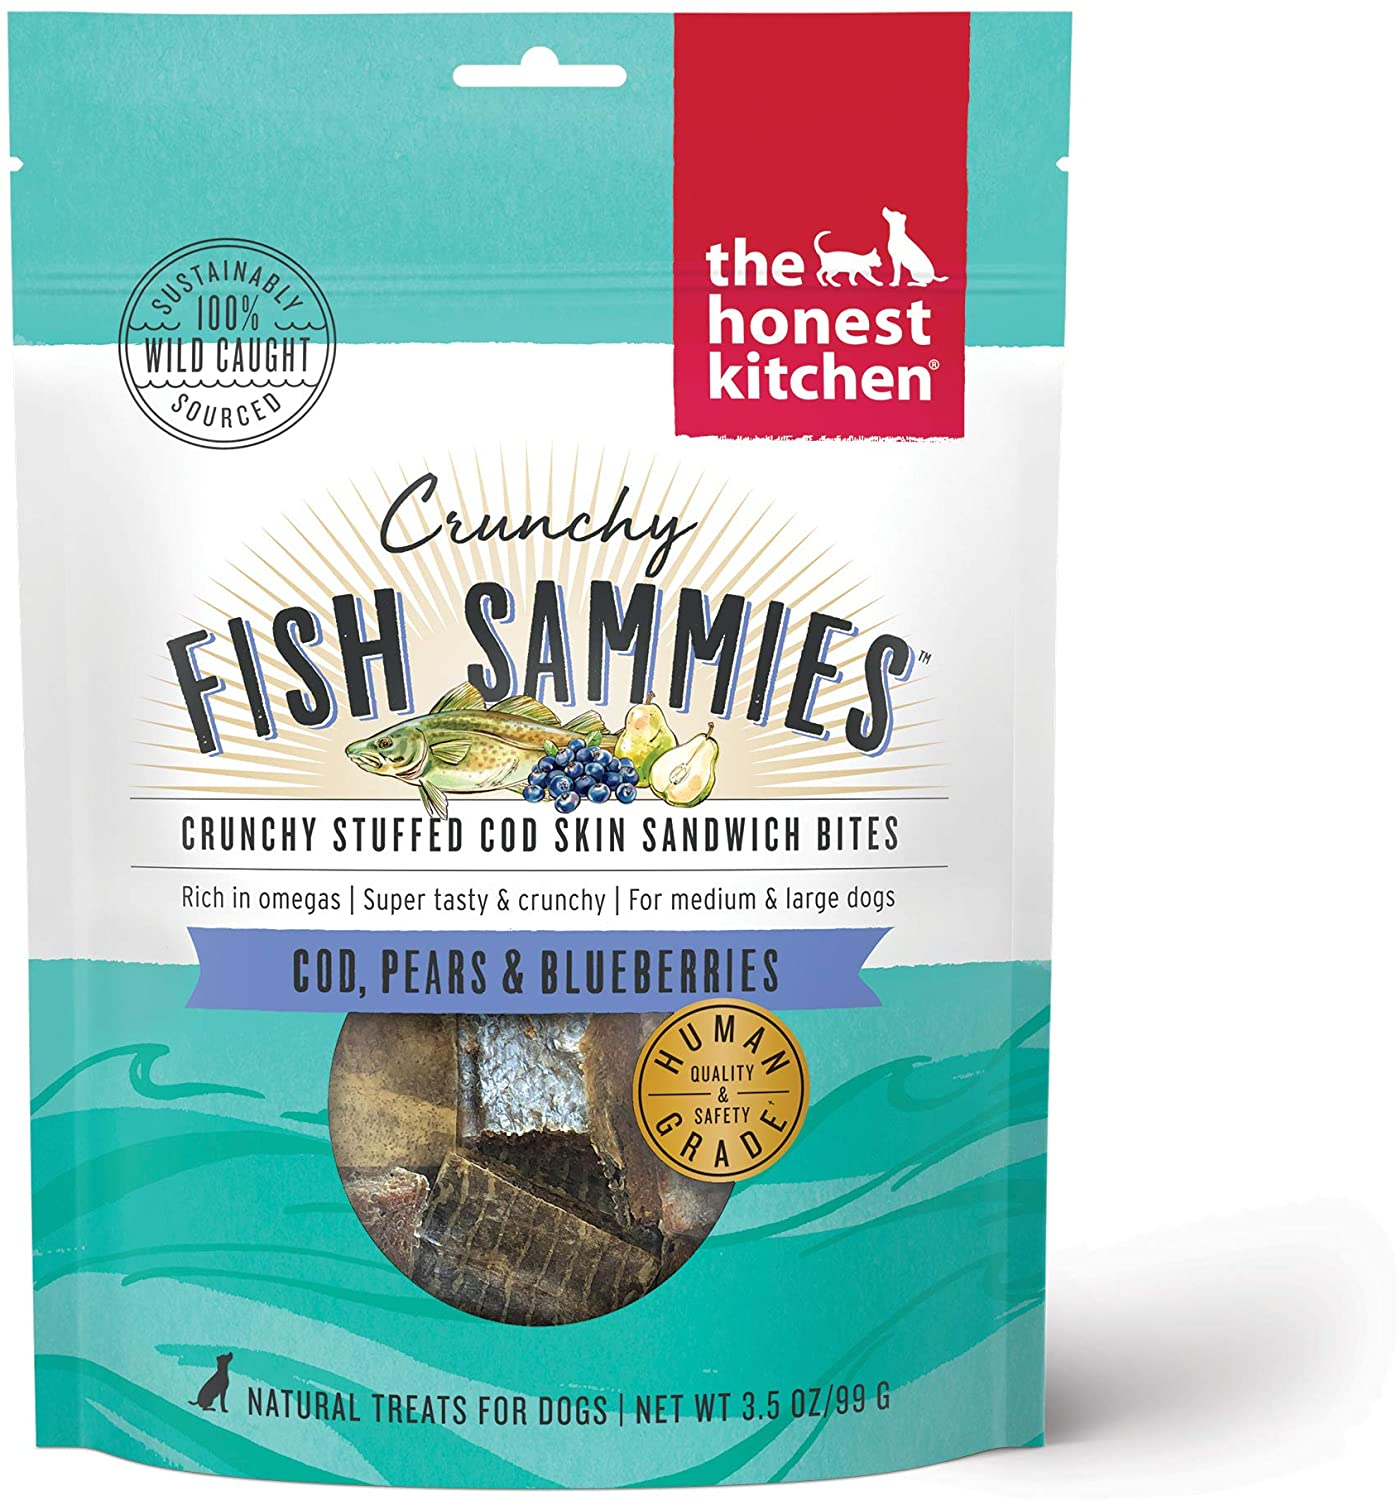 The Honest Kitchen Crunchy Fish Sammies Cod, Pears & Blueberries Dog Treats, 3.5-oz